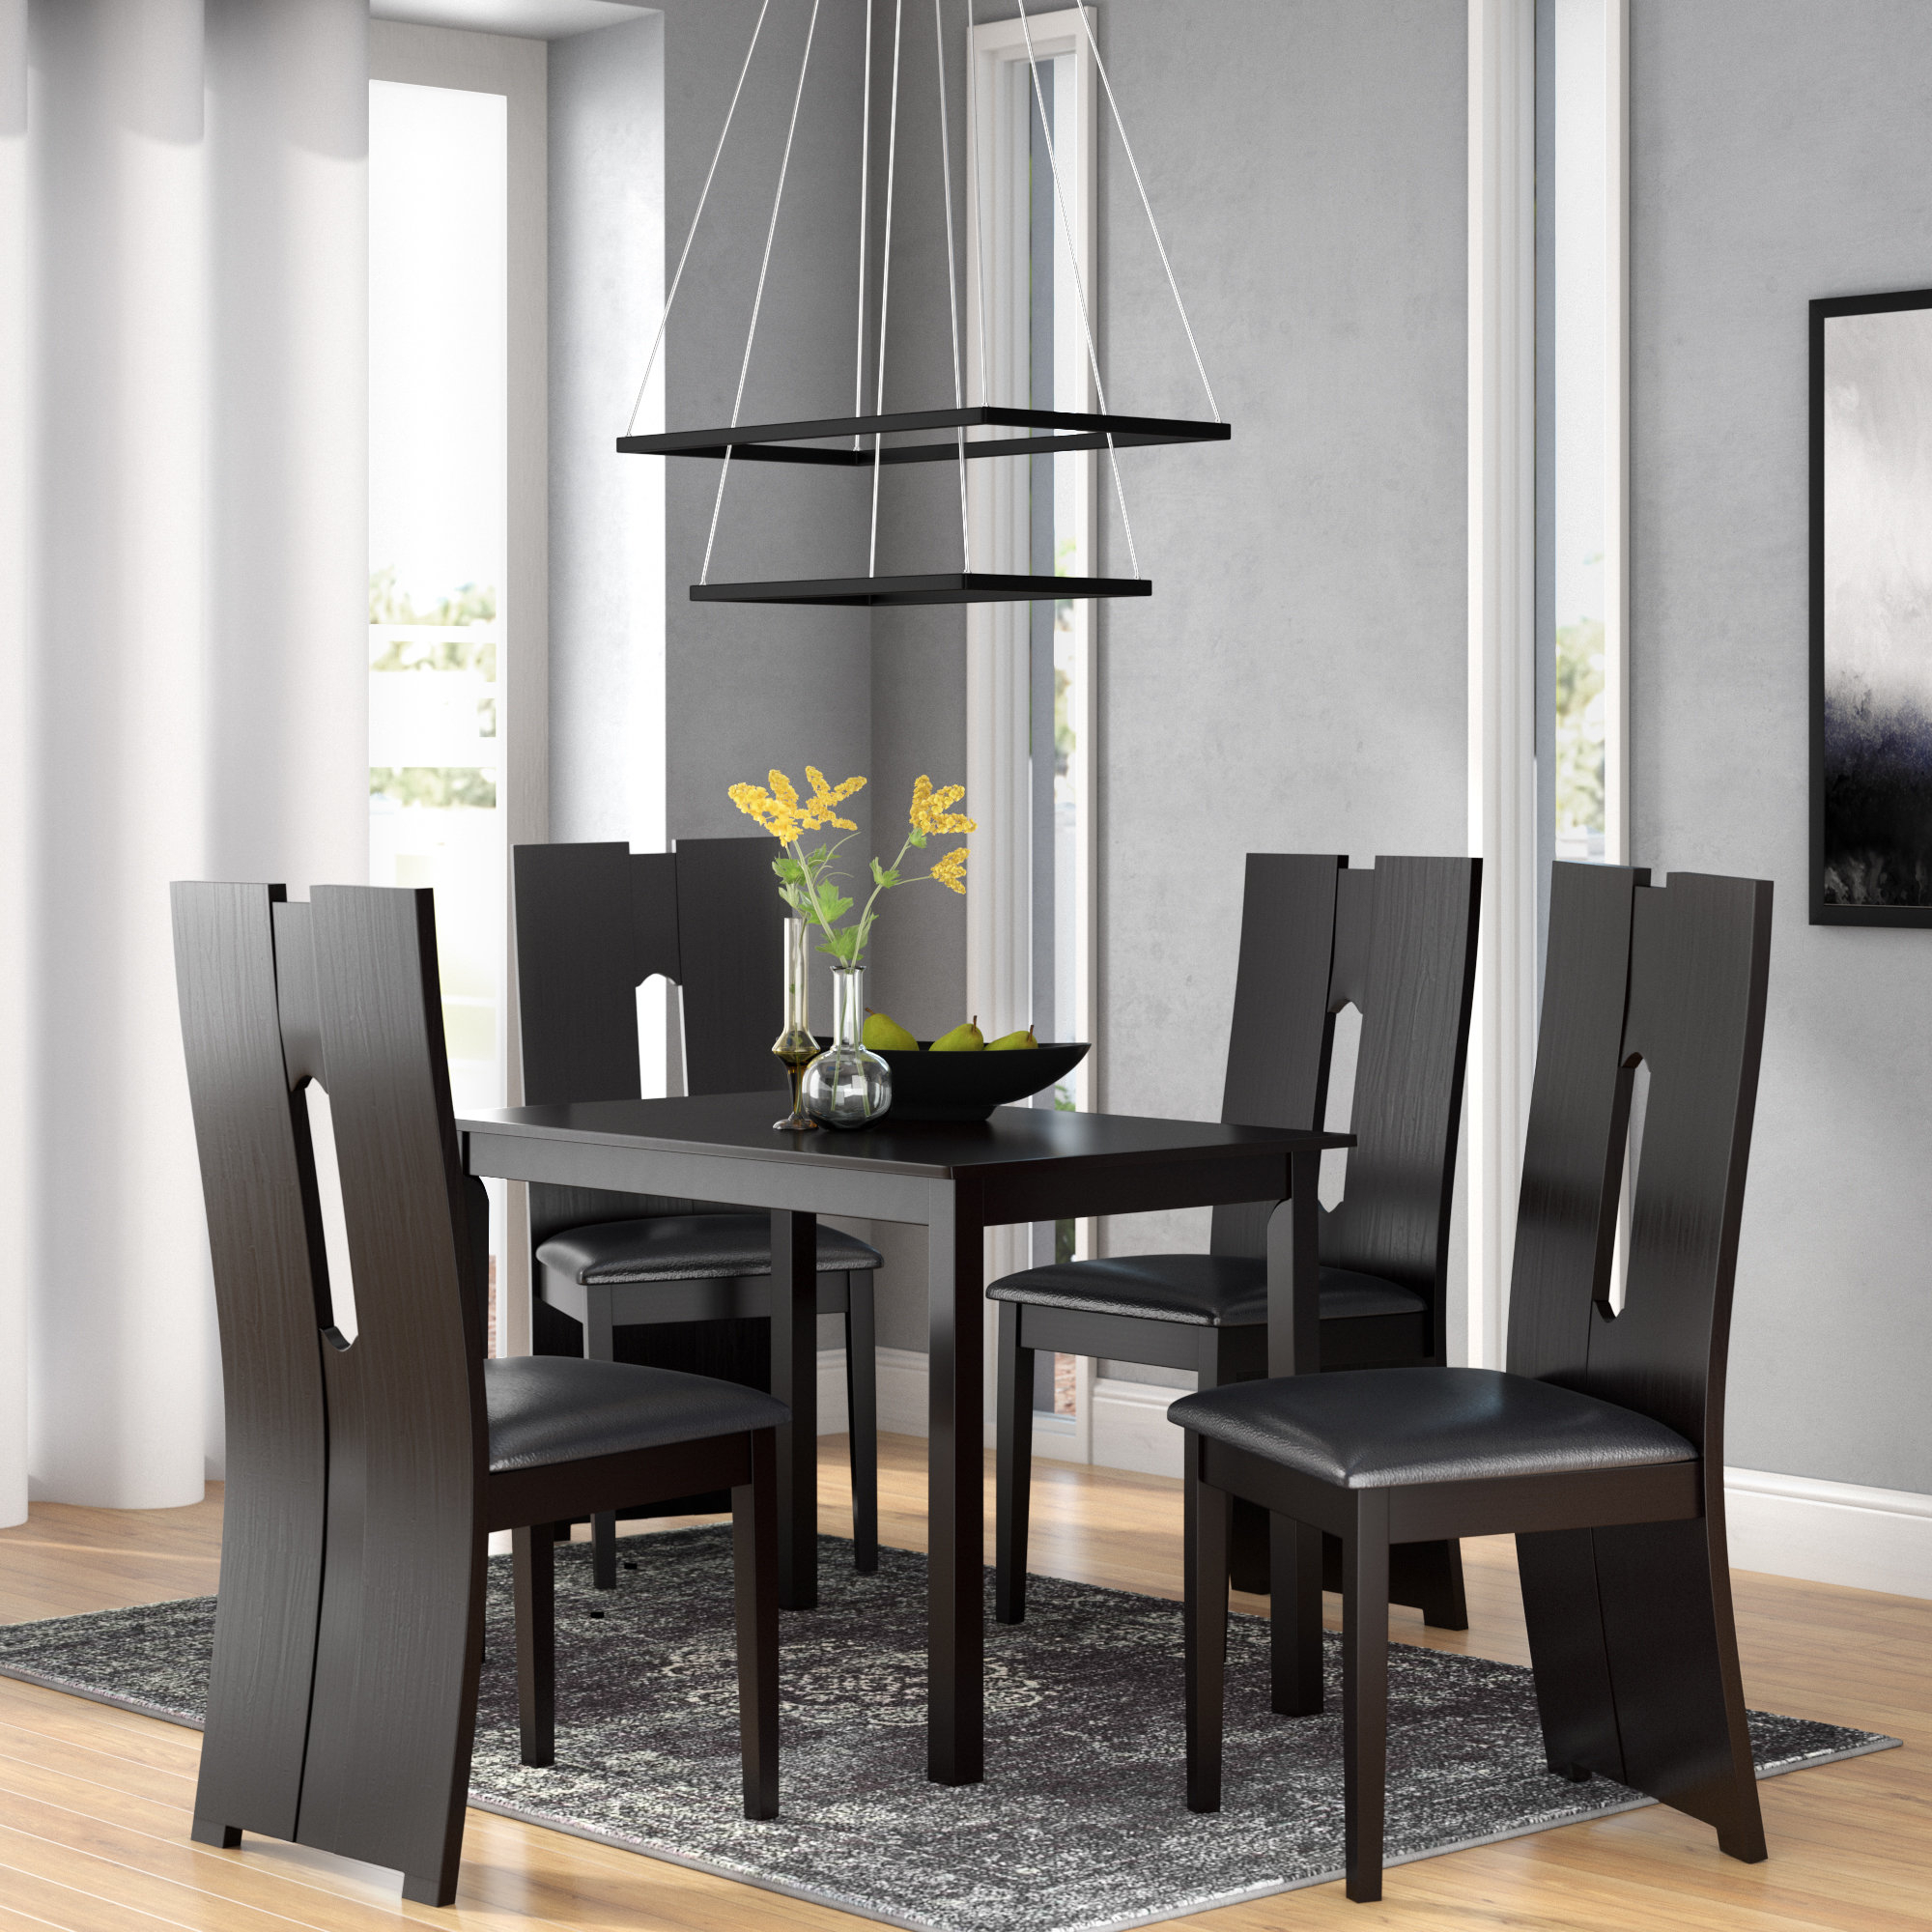 5 Piece Breakfast Nook Dining Sets Intended For Well Known Orren Ellis Onsted Modern And Contemporary 5 Piece Breakfast Nook (View 5 of 25)